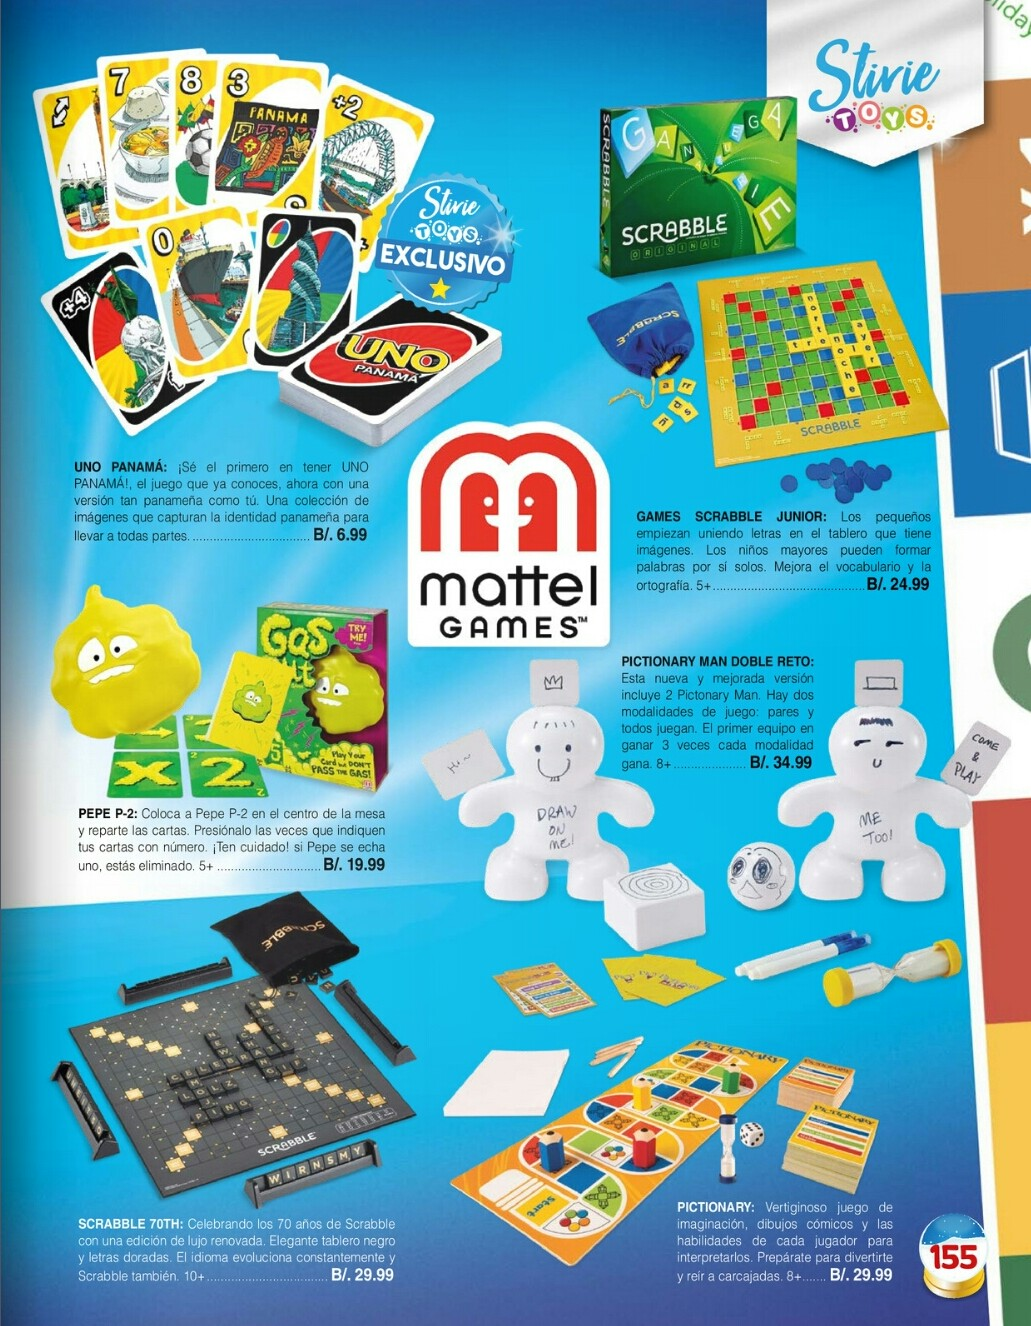 Catalogo juguetes Stivie toys 2018 p155